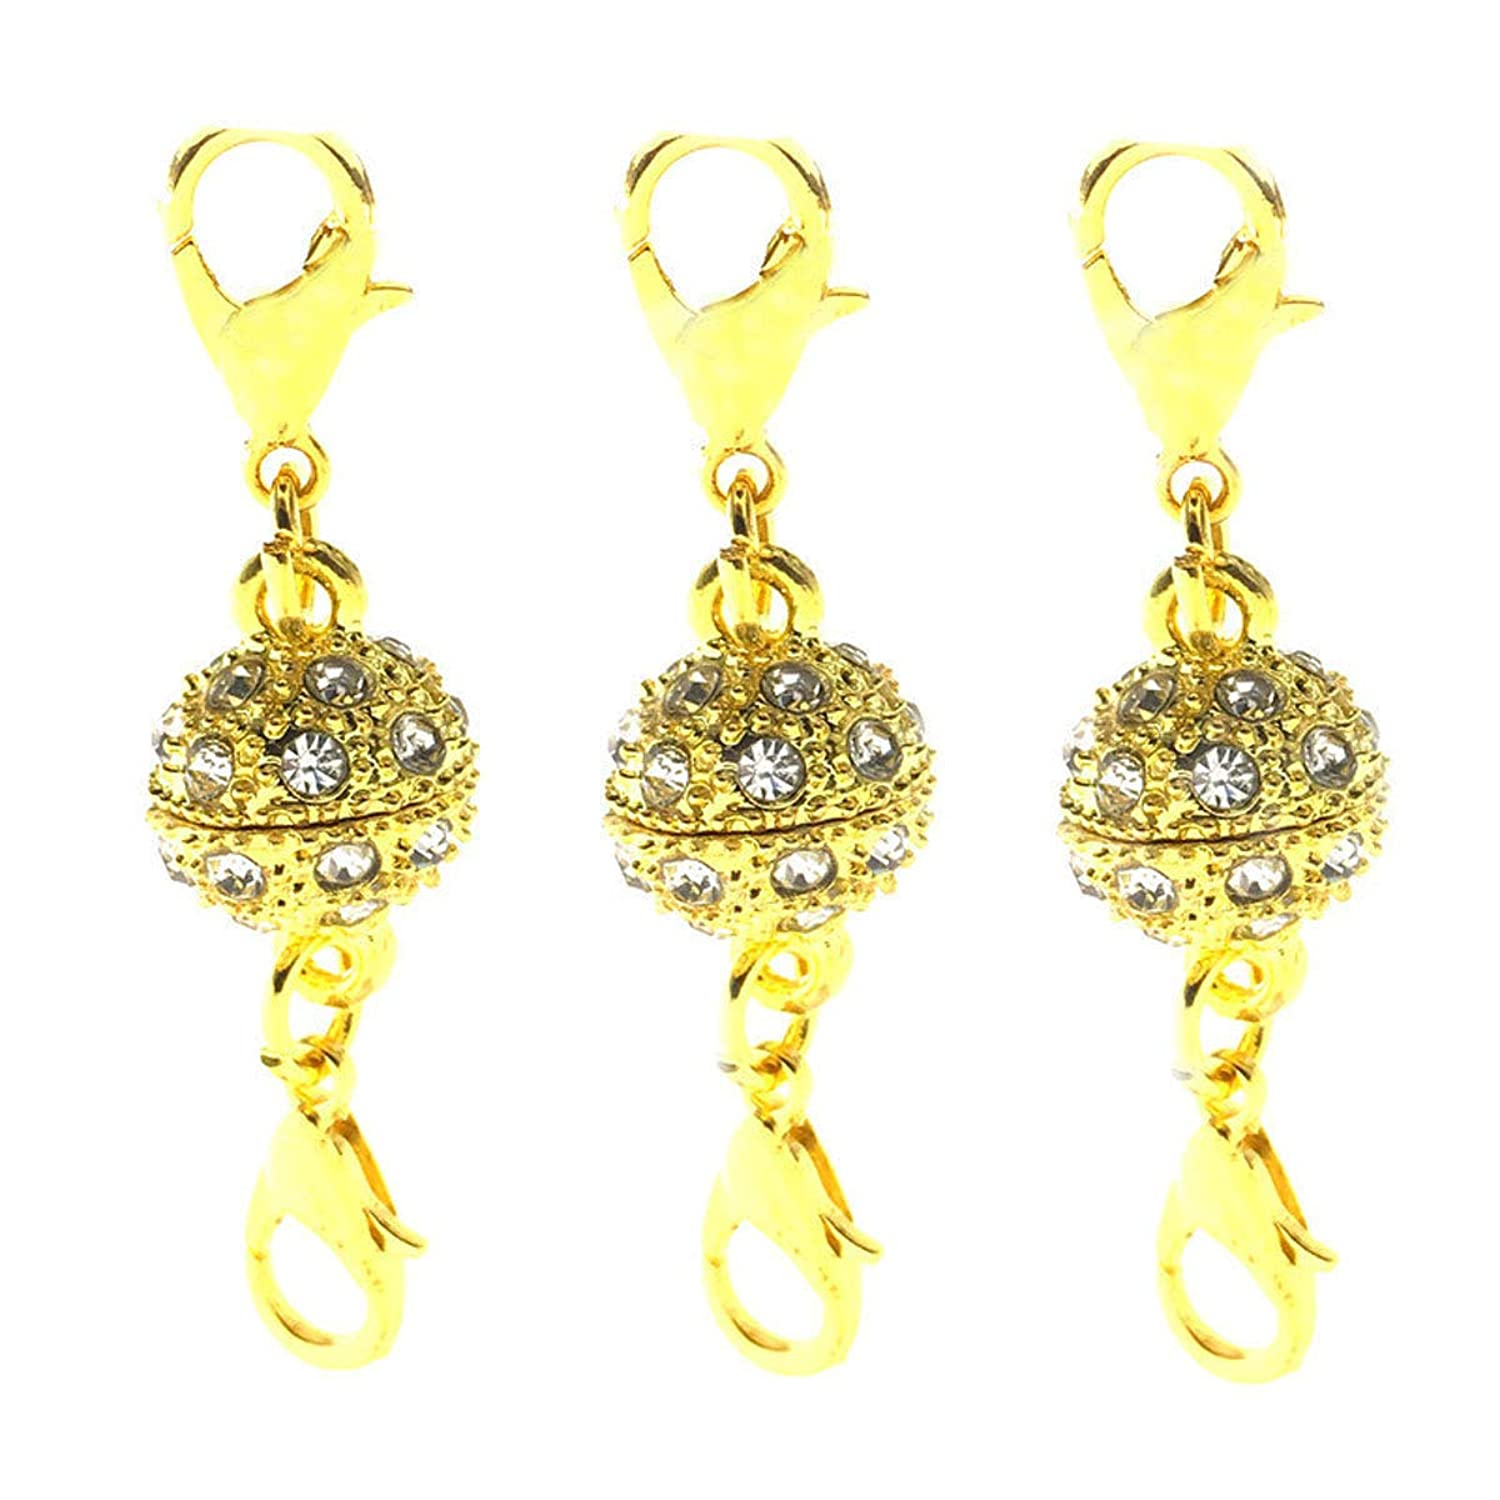 Set of 10 Easy Magnetic Lobster Clasp Converters for Jewelry Necklace Bracelet Rhinestone Ball Style Strong Lobster Closure (Gold)